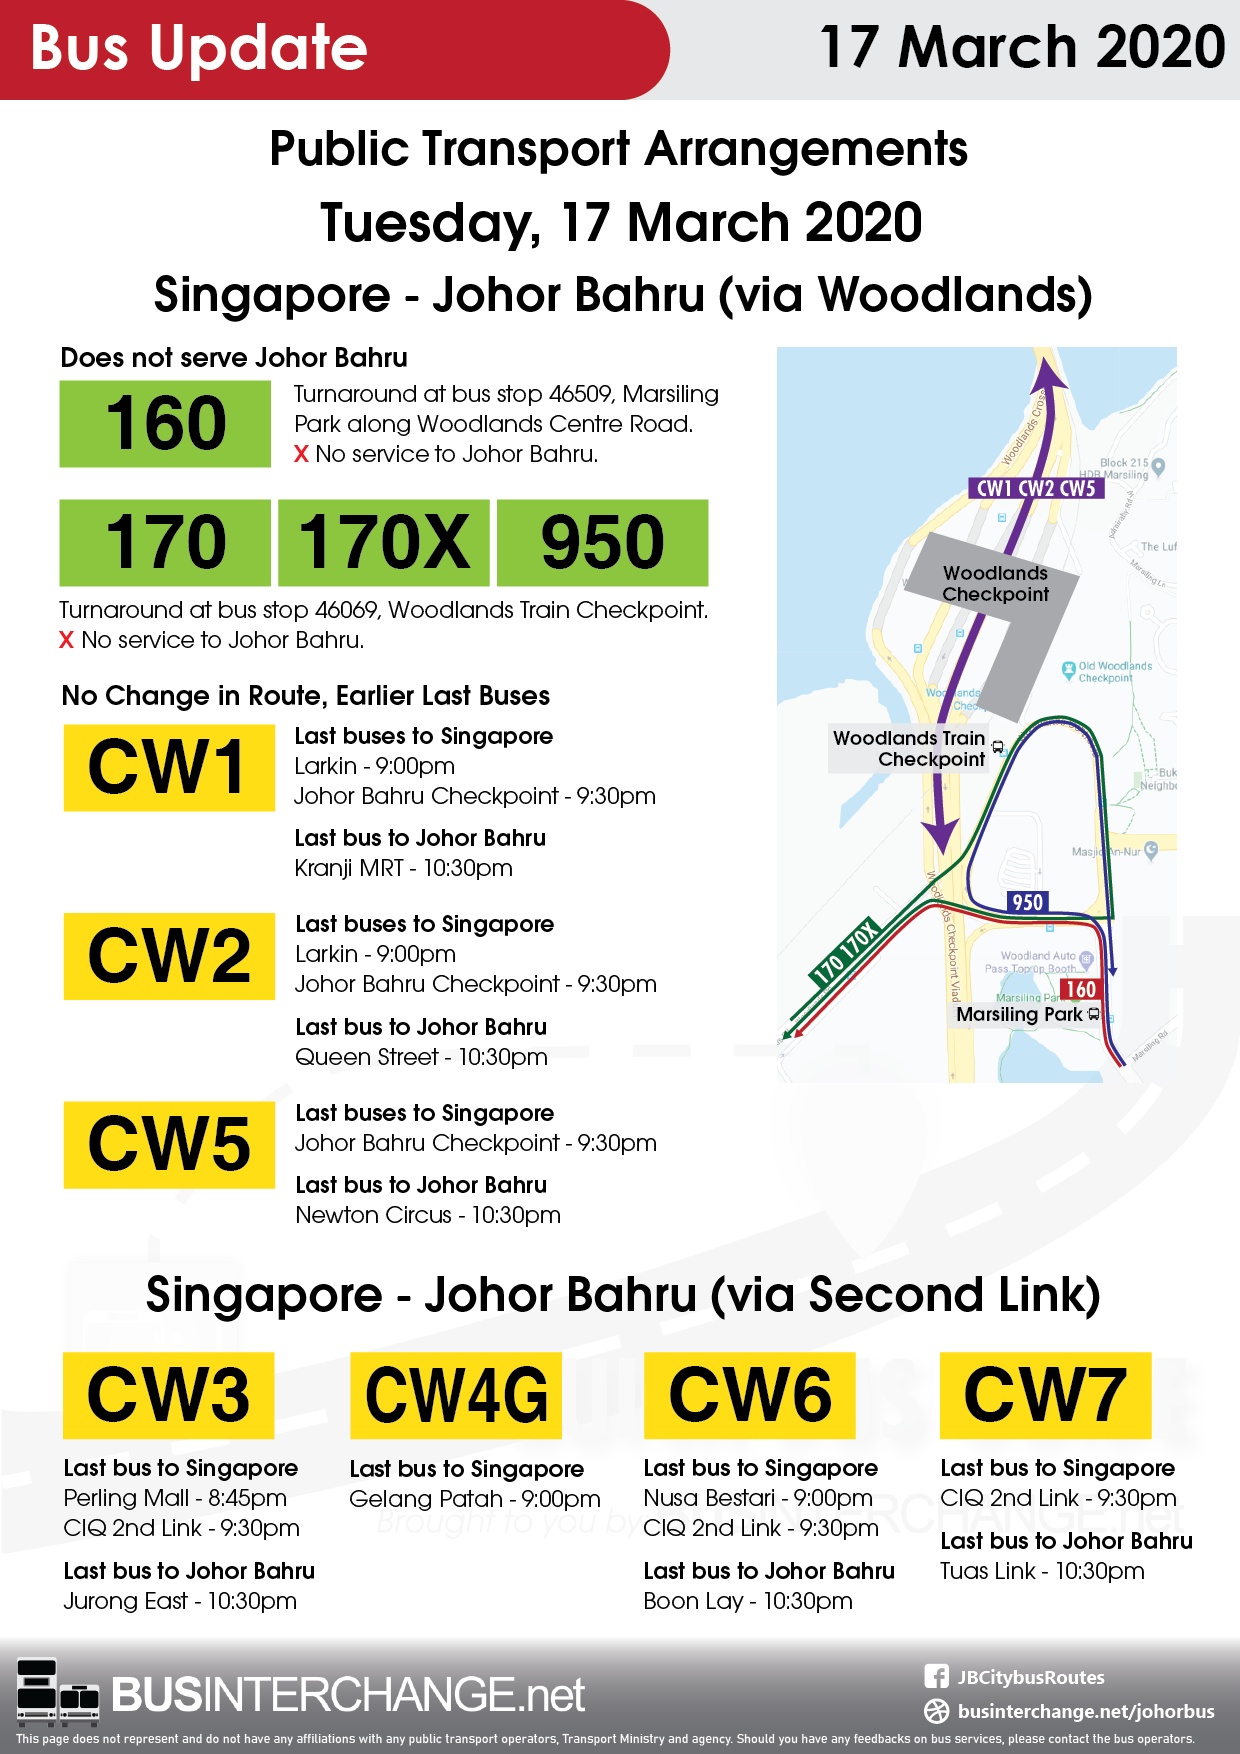 Public transport arrangements on 17 March 2020, before the implementation of Movement Control Order on the next day.